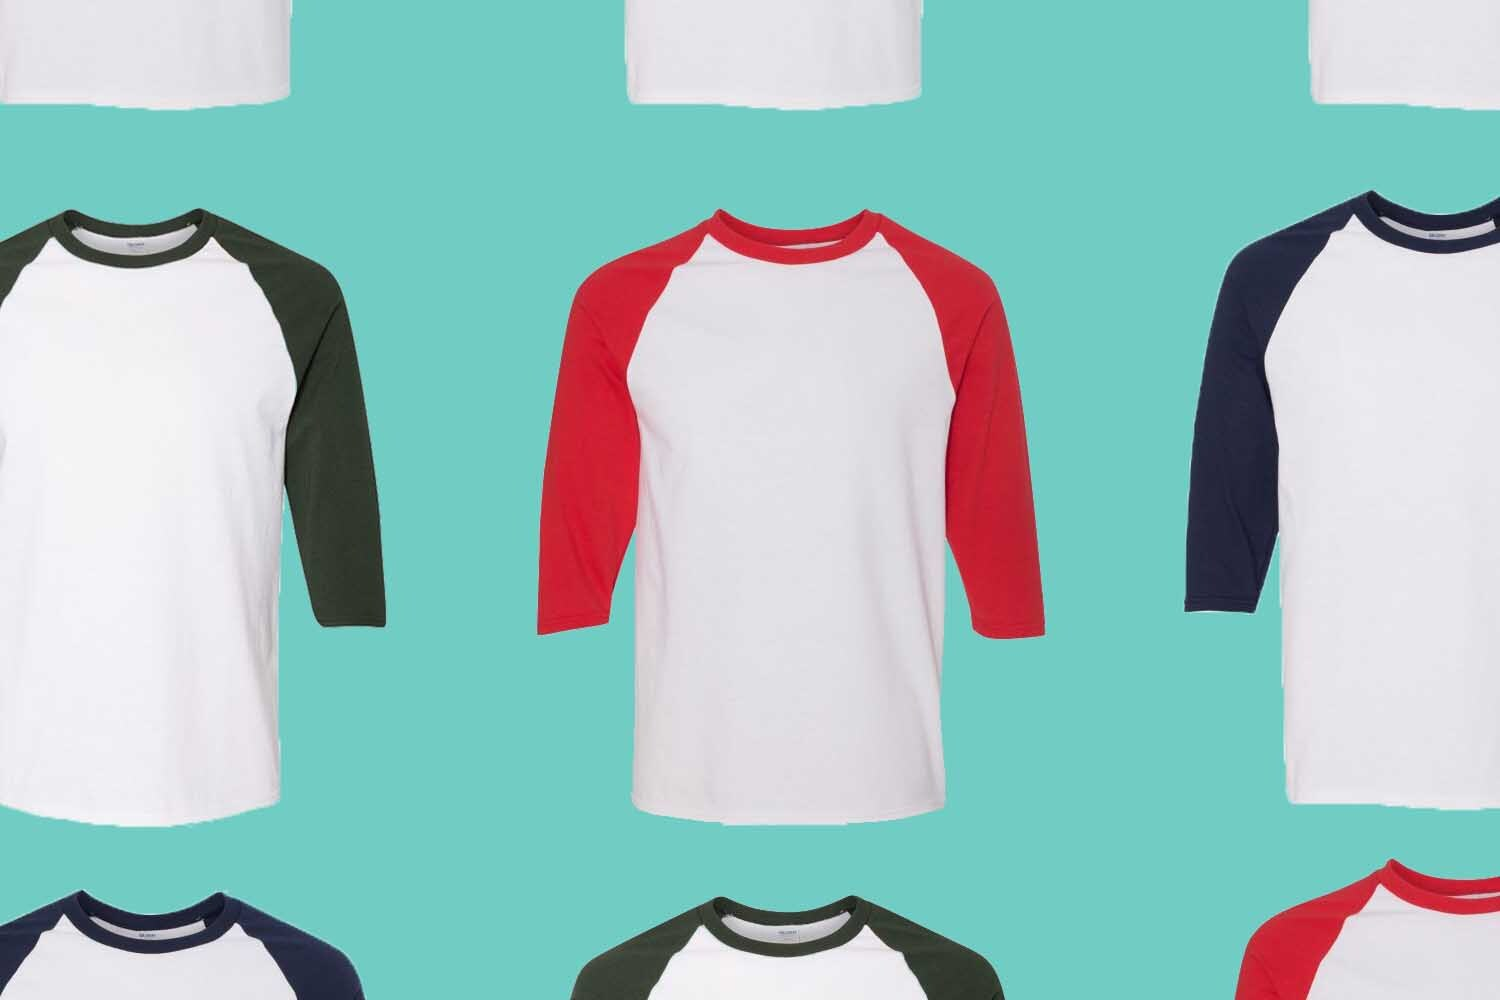 Take It From a Woman: The Baseball Tee Is the Sexiest Shirt You Can Wear